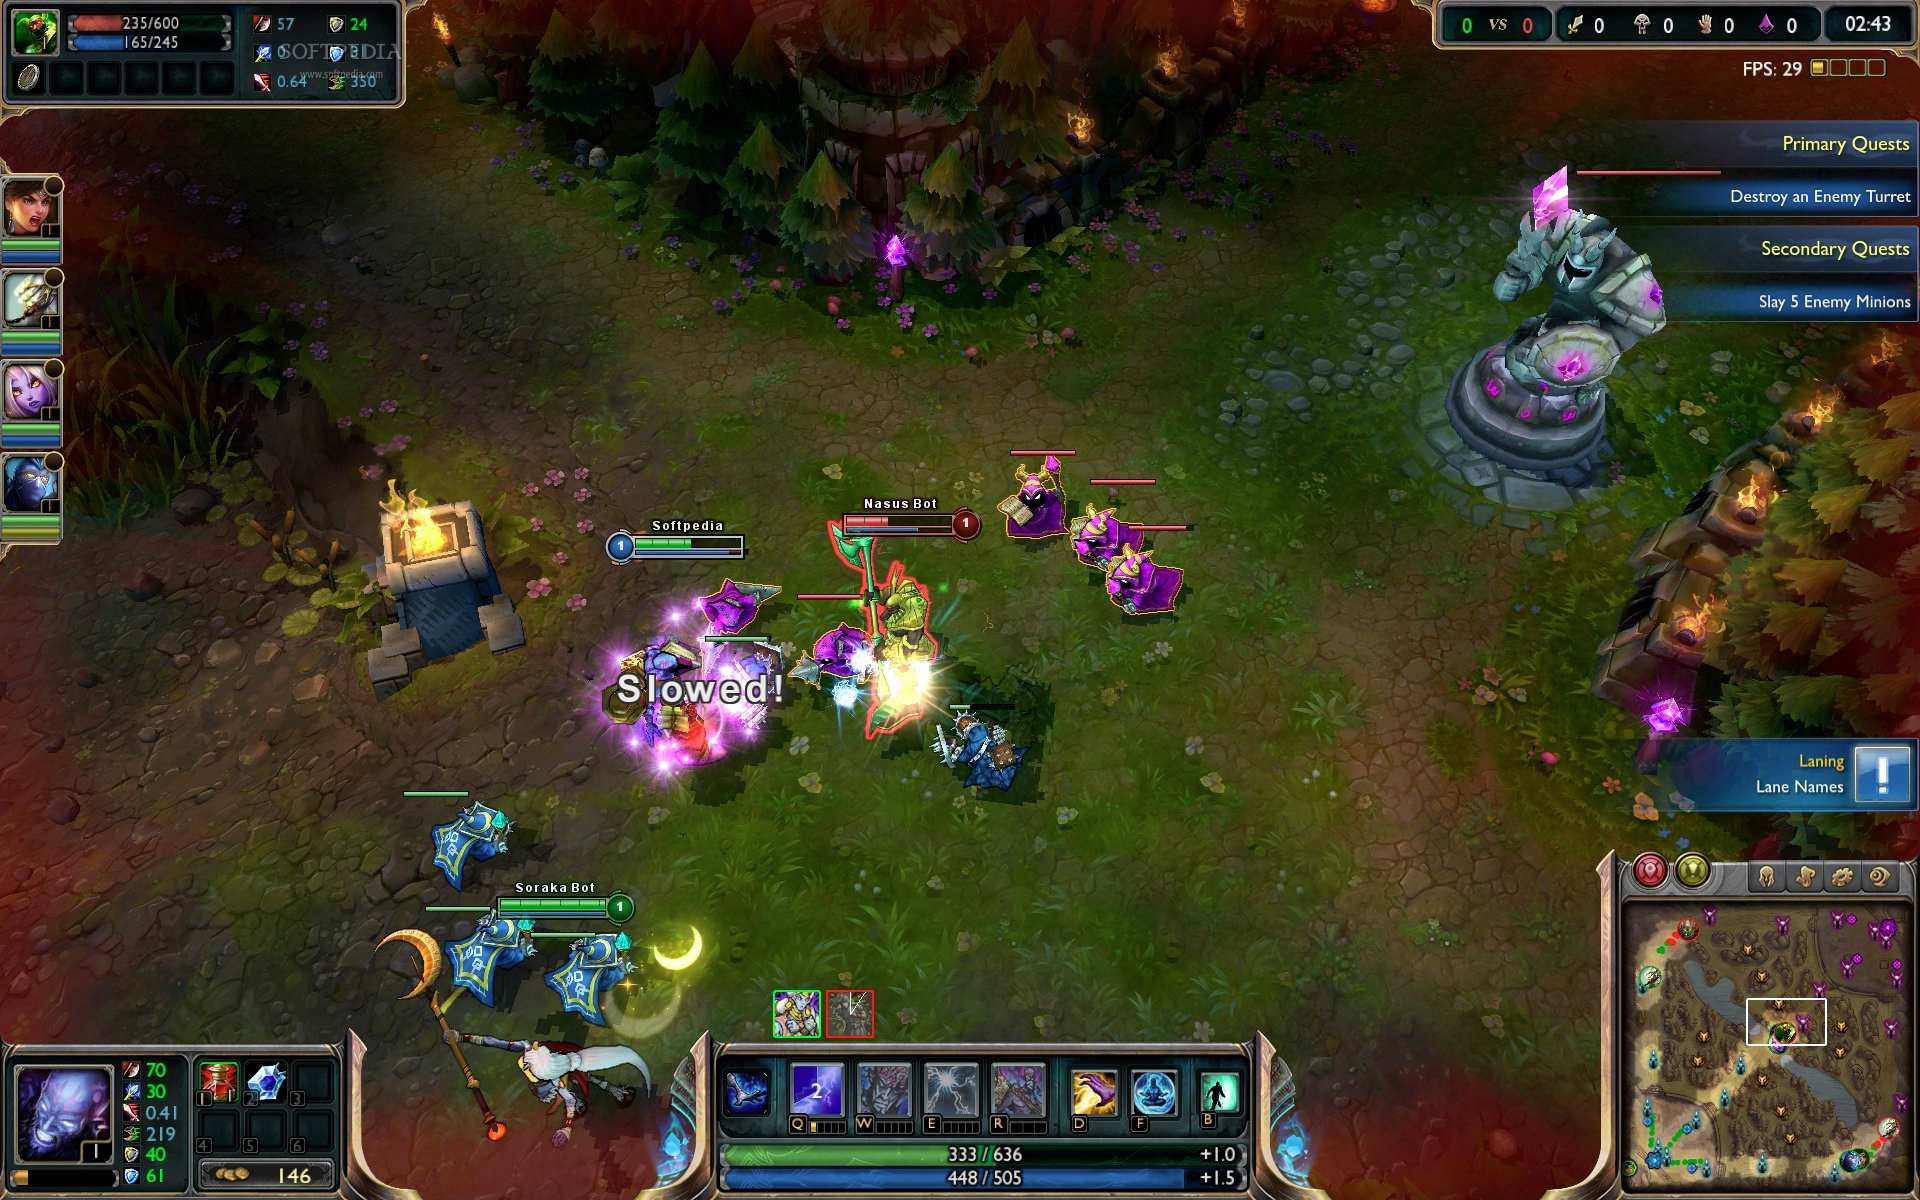 How to Completely Uninstall League of Legends